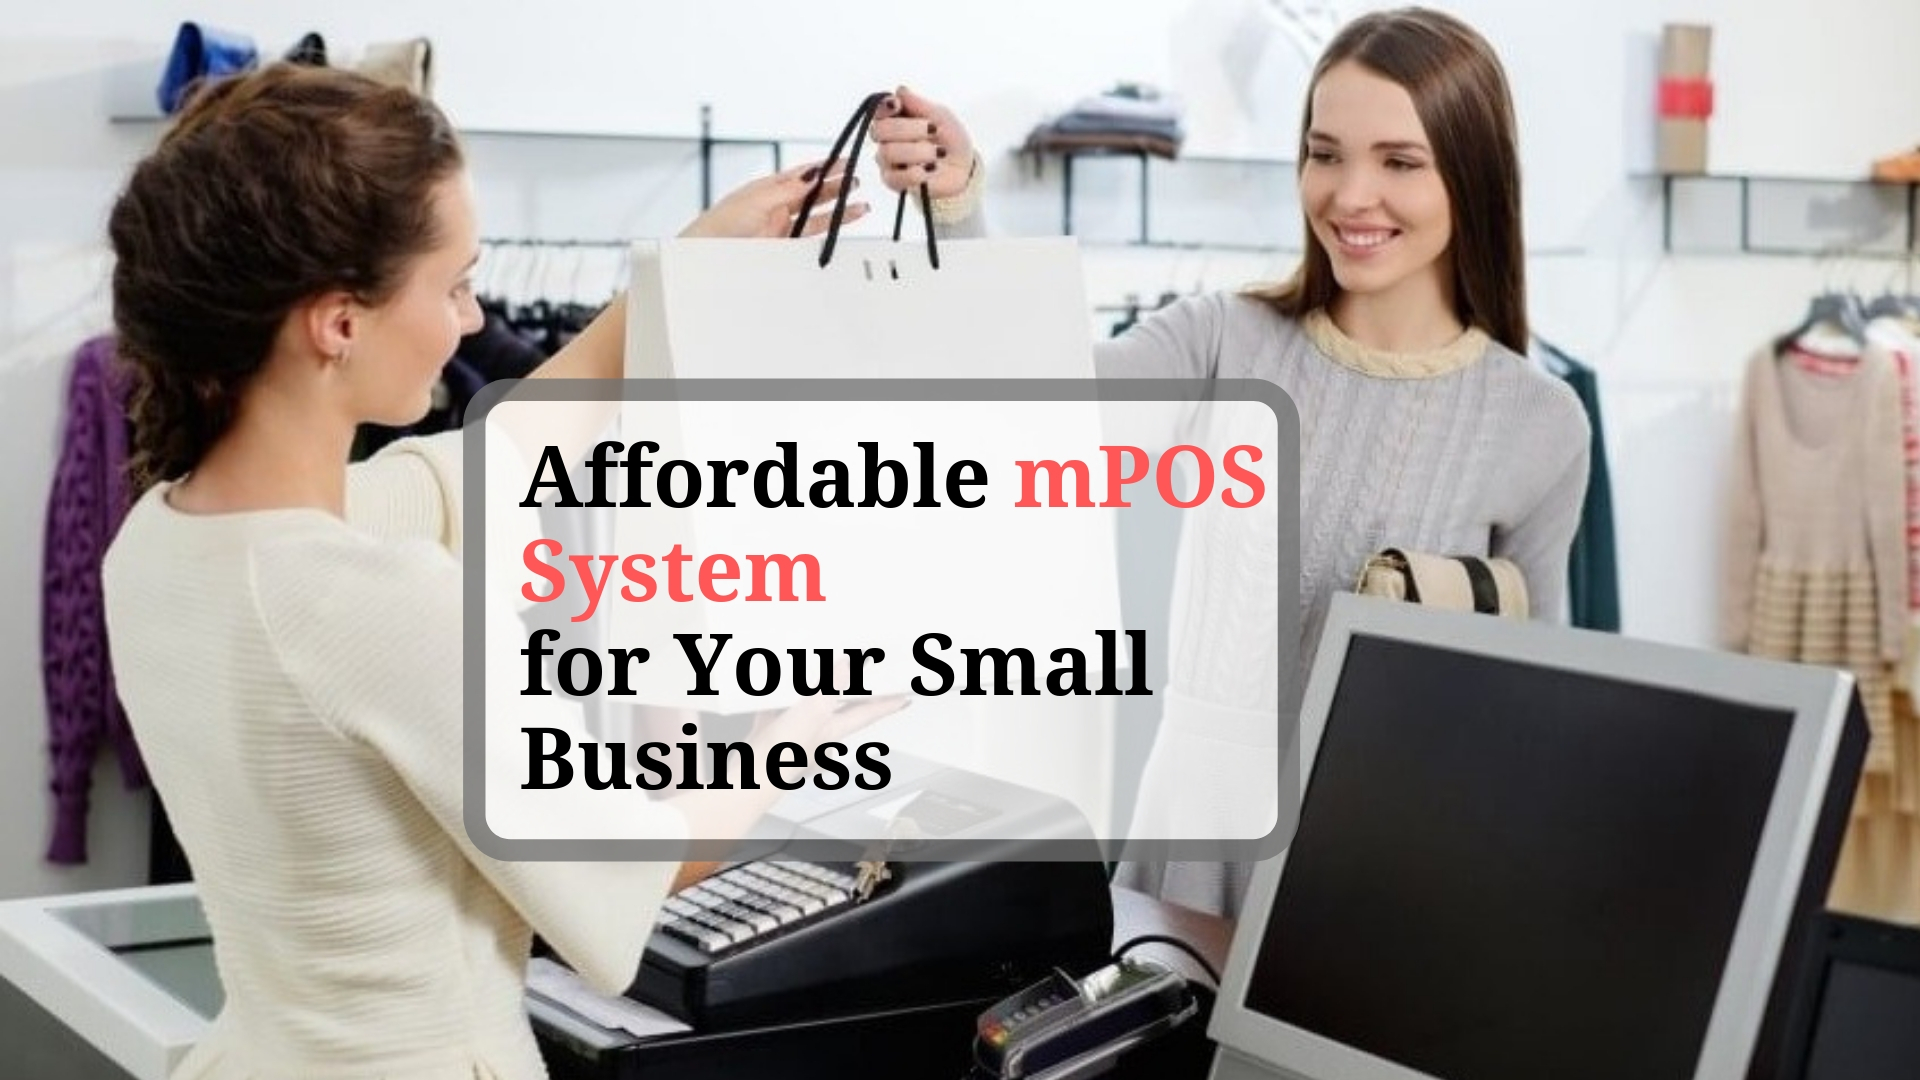 Affordable mPOS System for Your Small Business